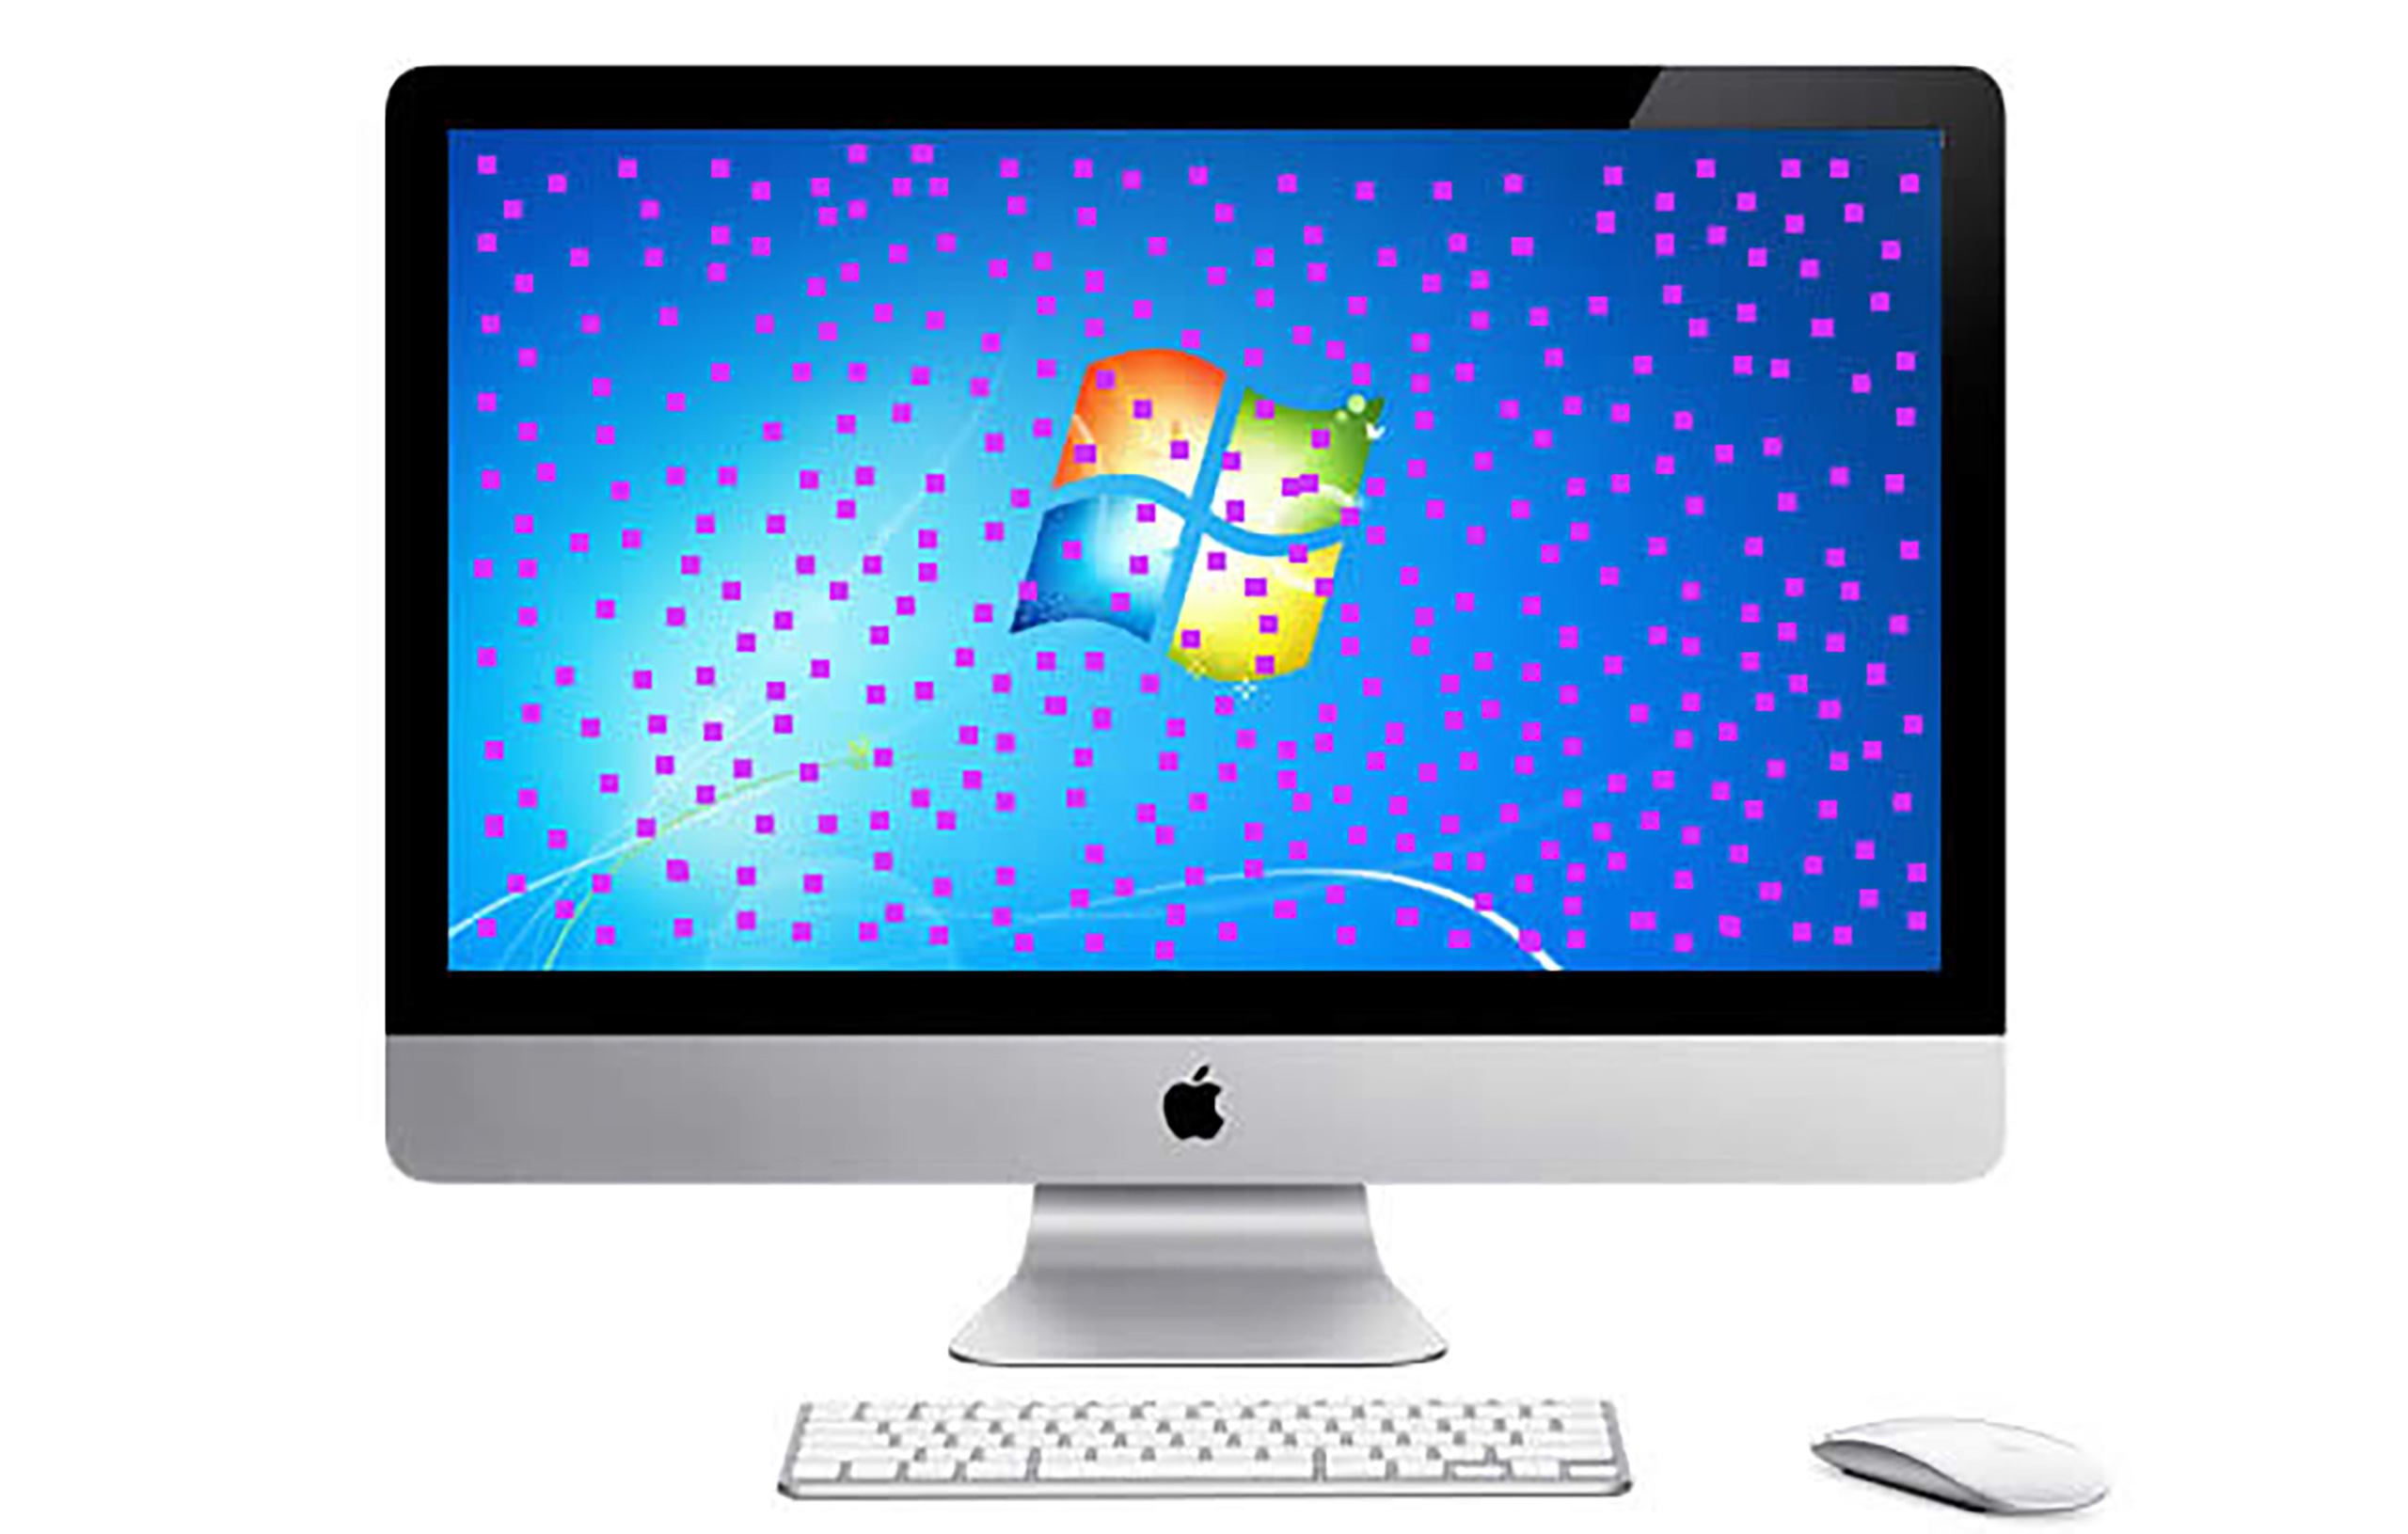 Apple iMac Grafikfehler